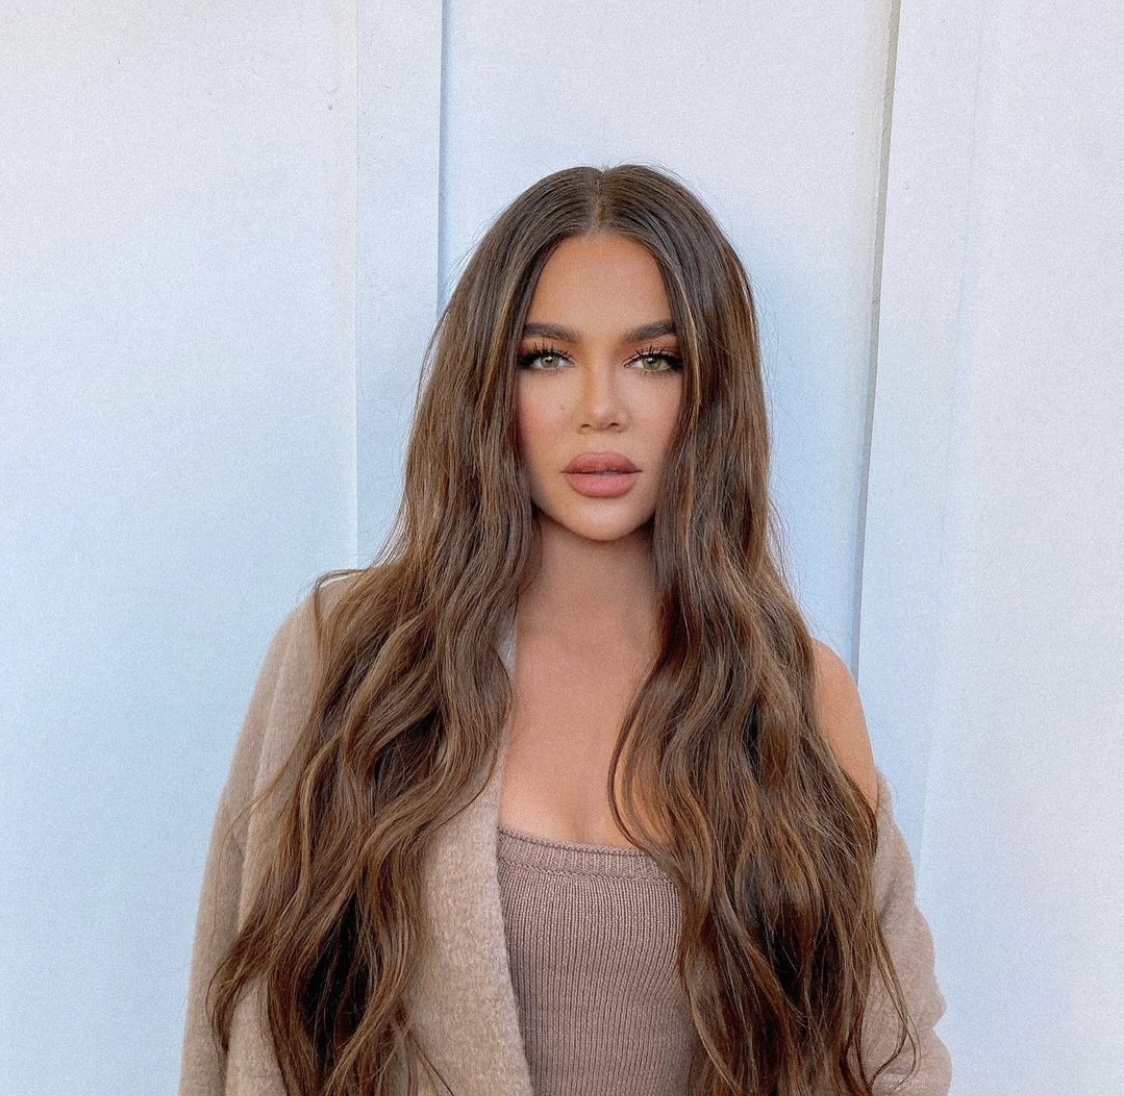 Khloe Kardashian Was Arrested And Briefly Spent Time In Jail